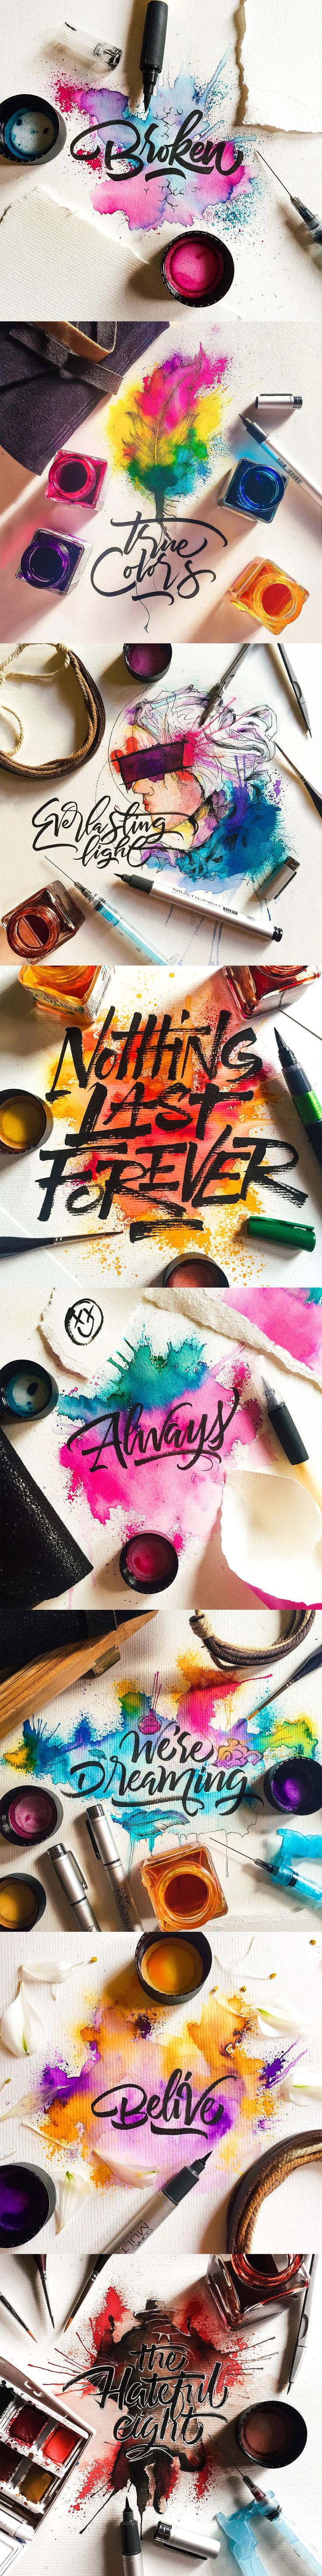 Watercolor / Calligraphy on Behance